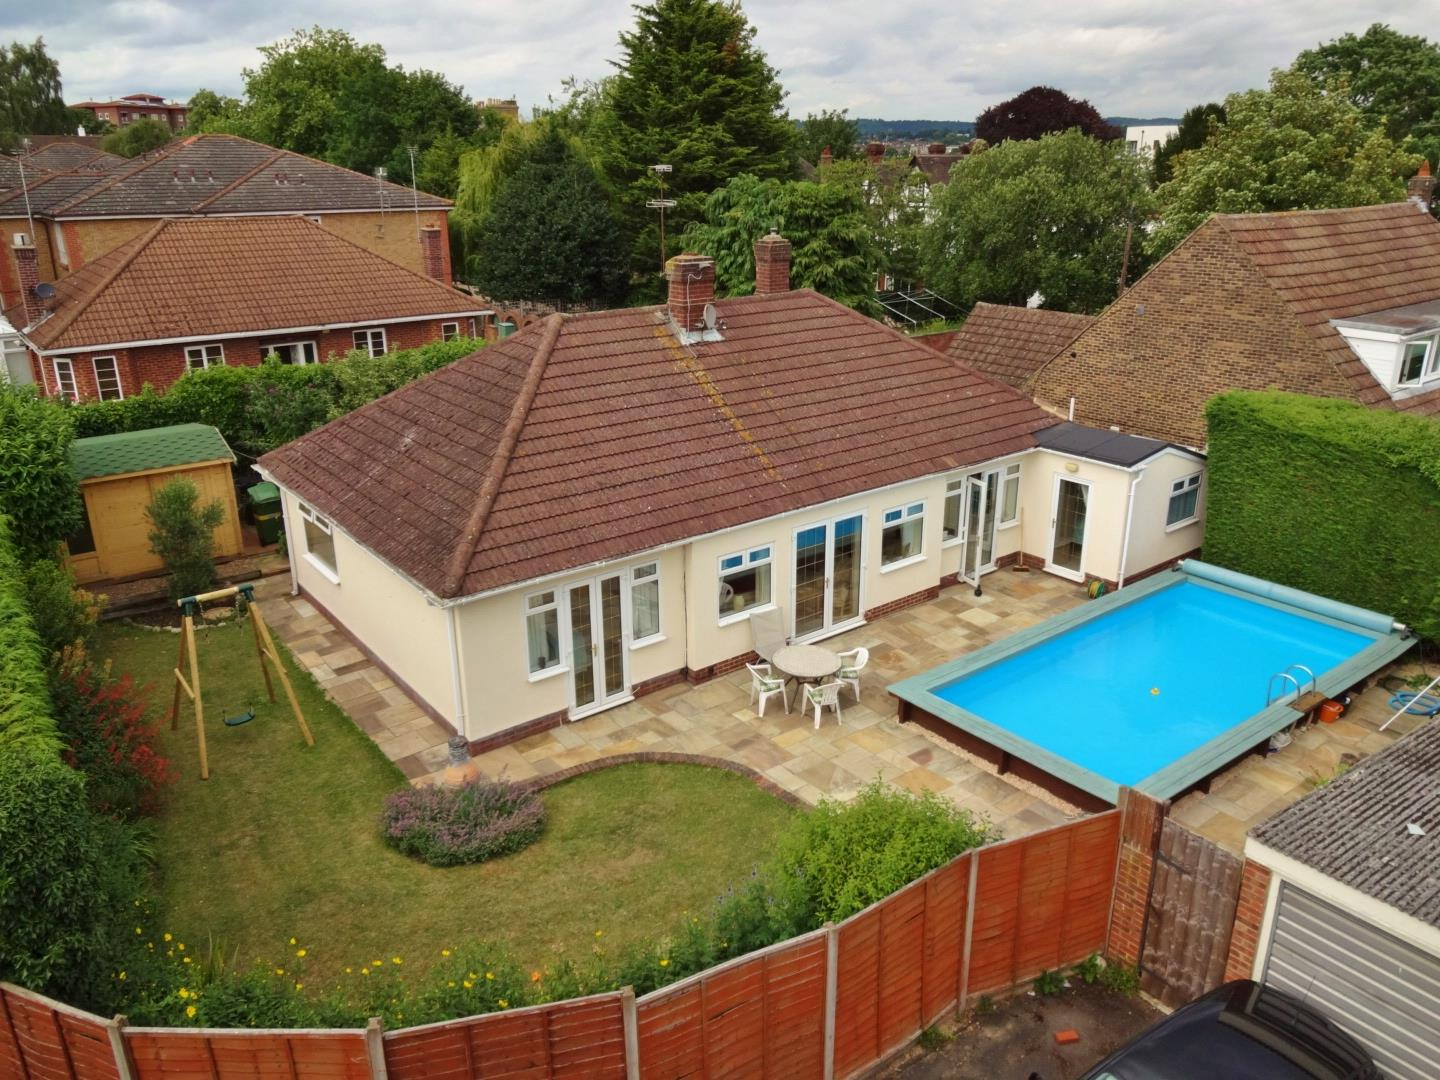 3 Bedrooms Detached Bungalow for sale in White Rock Place, Maidstone